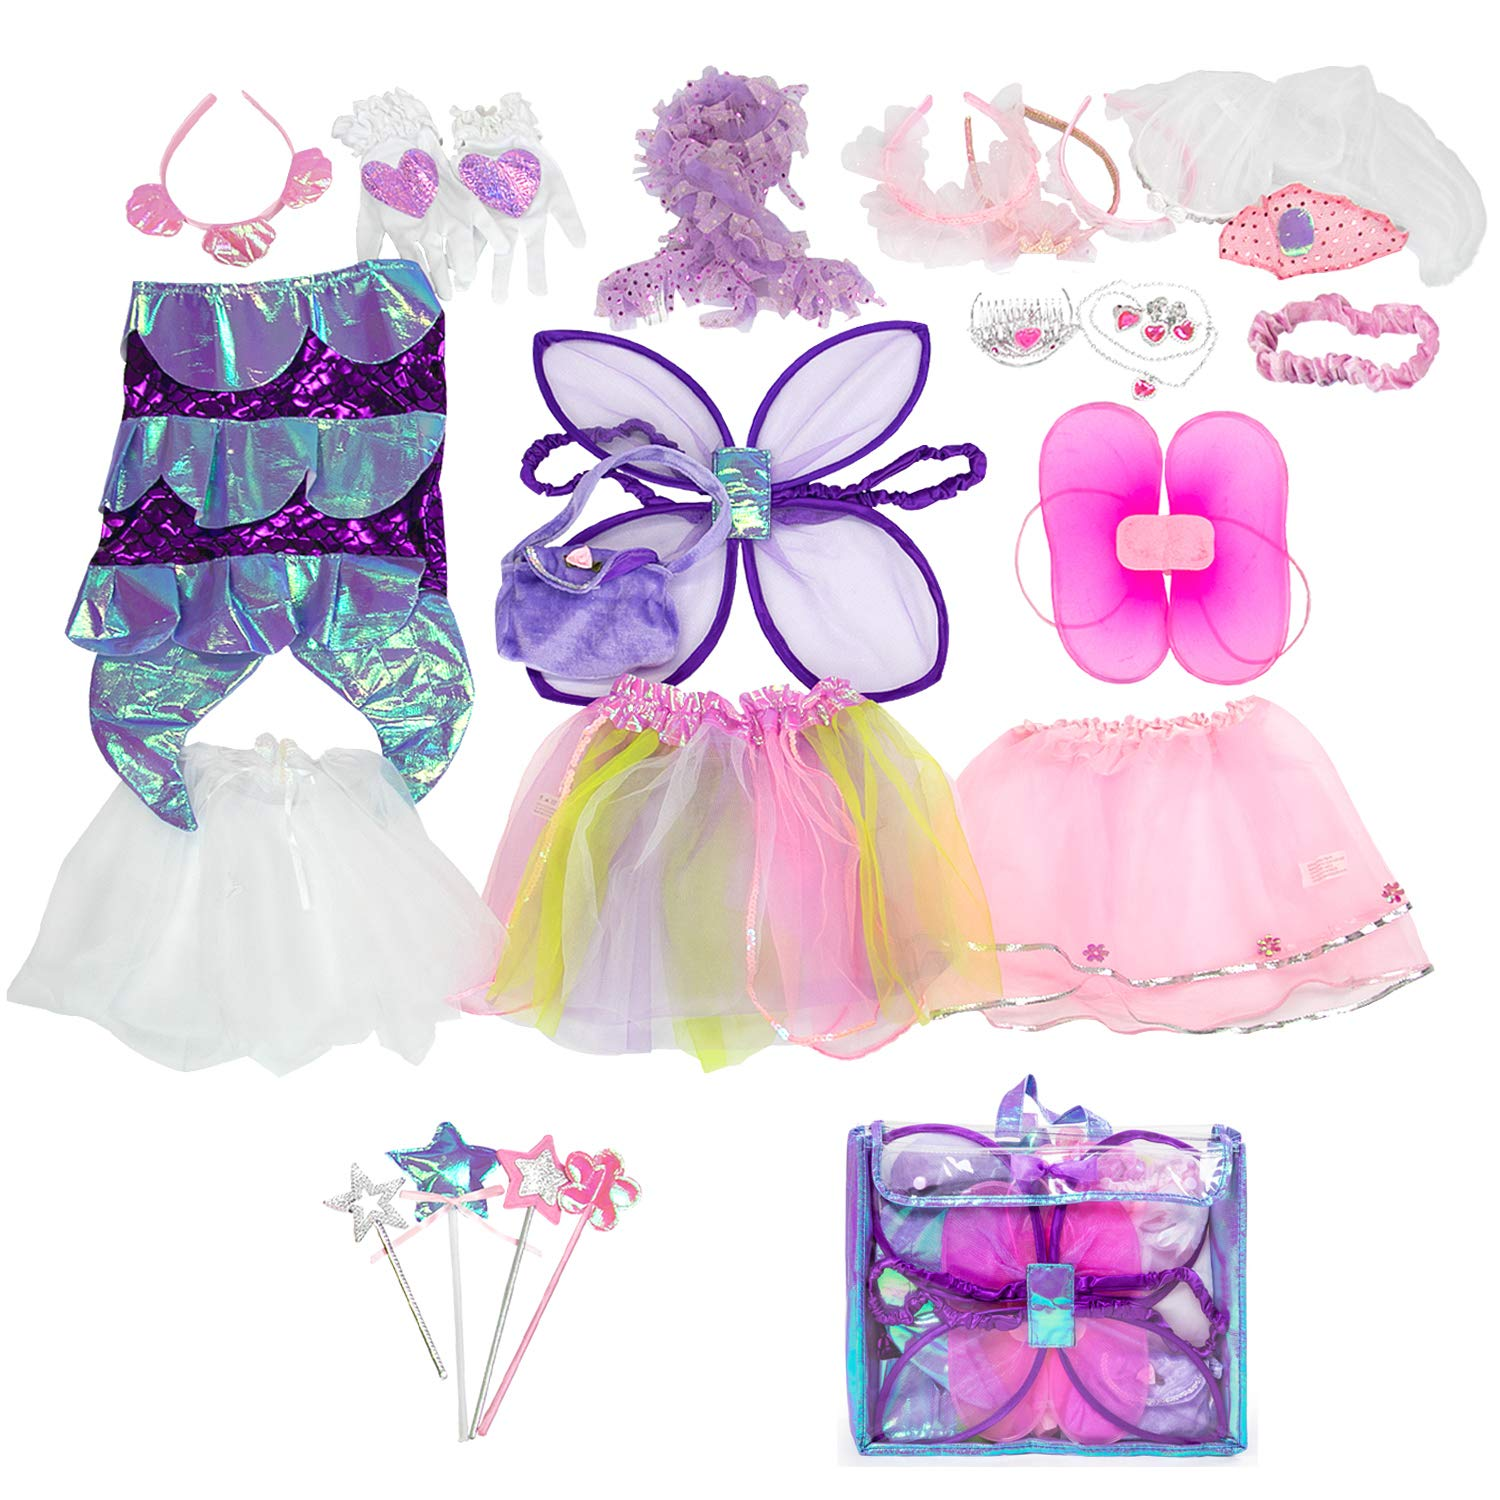 Sinuo Girl Dress Up Set Princess, Fairy and Mermaid Role Play Costumes Christmas Party Dress-up Trunk with Accessories 25pcs Girls Pretend Costume for Kids Age from 2-5